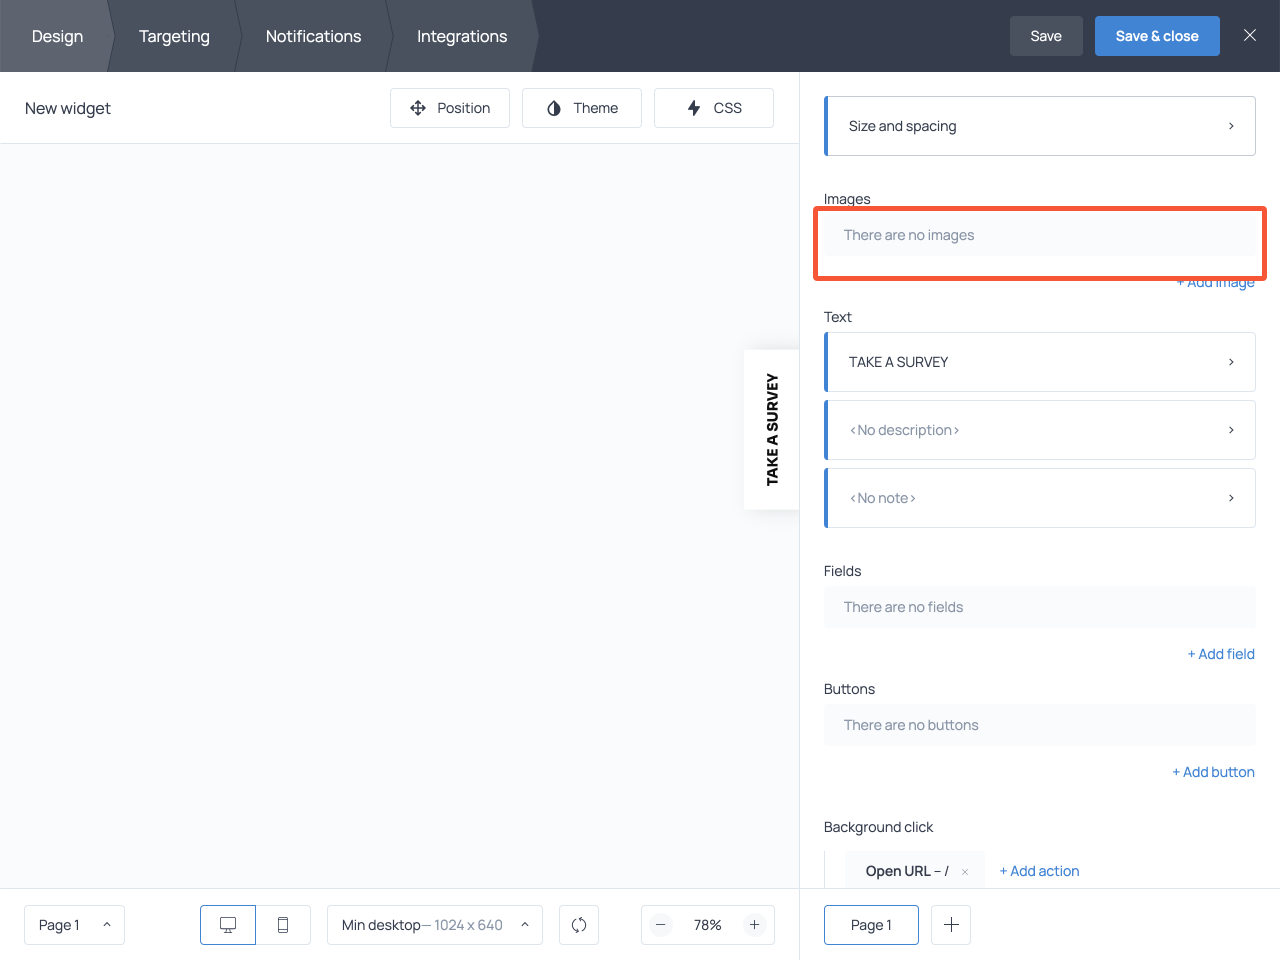 Floating take a survey button template powered by Getsitecontrol